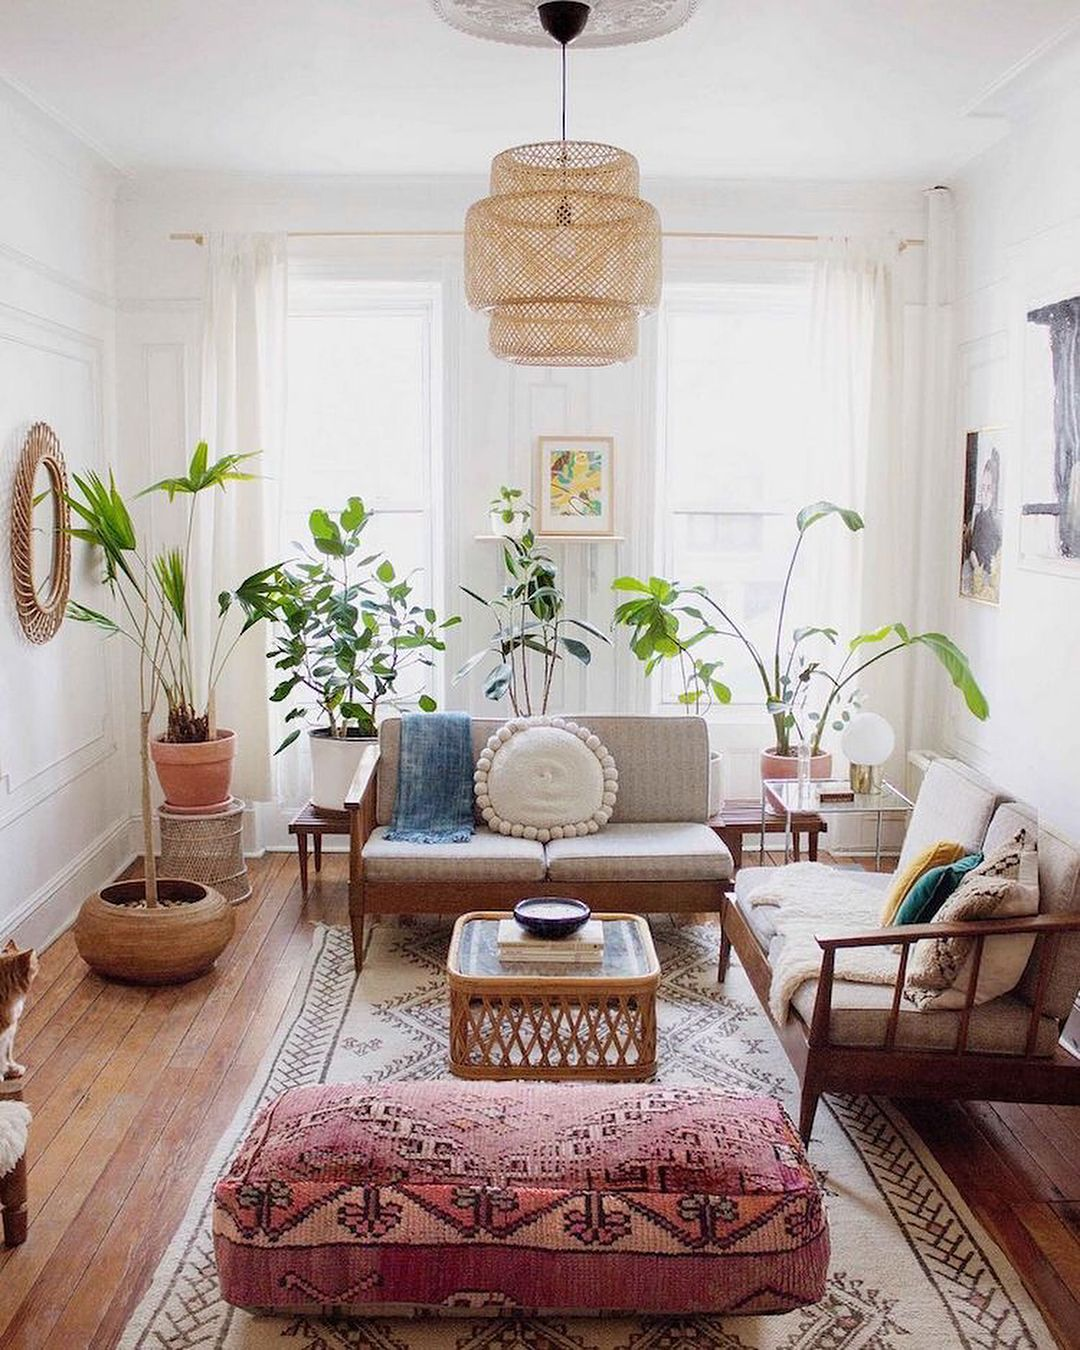 Vintage Living Room Ideas For Small Spaces: Natural Elements Galore. Jungle Greens With Vintage Vibes